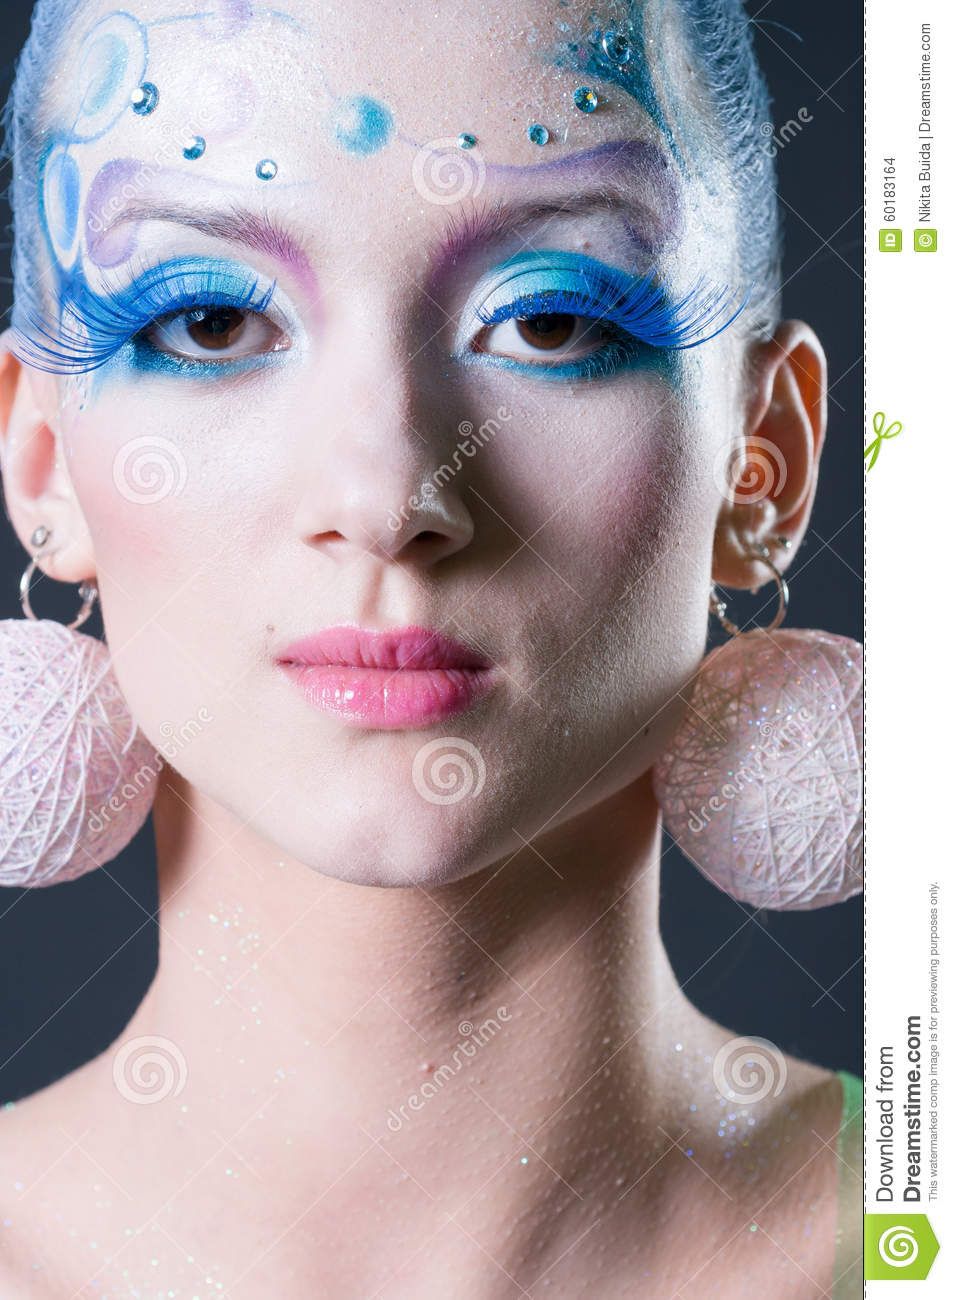 Makeup And Hair Artists Competition Editorial Stock Image - Image 60183164